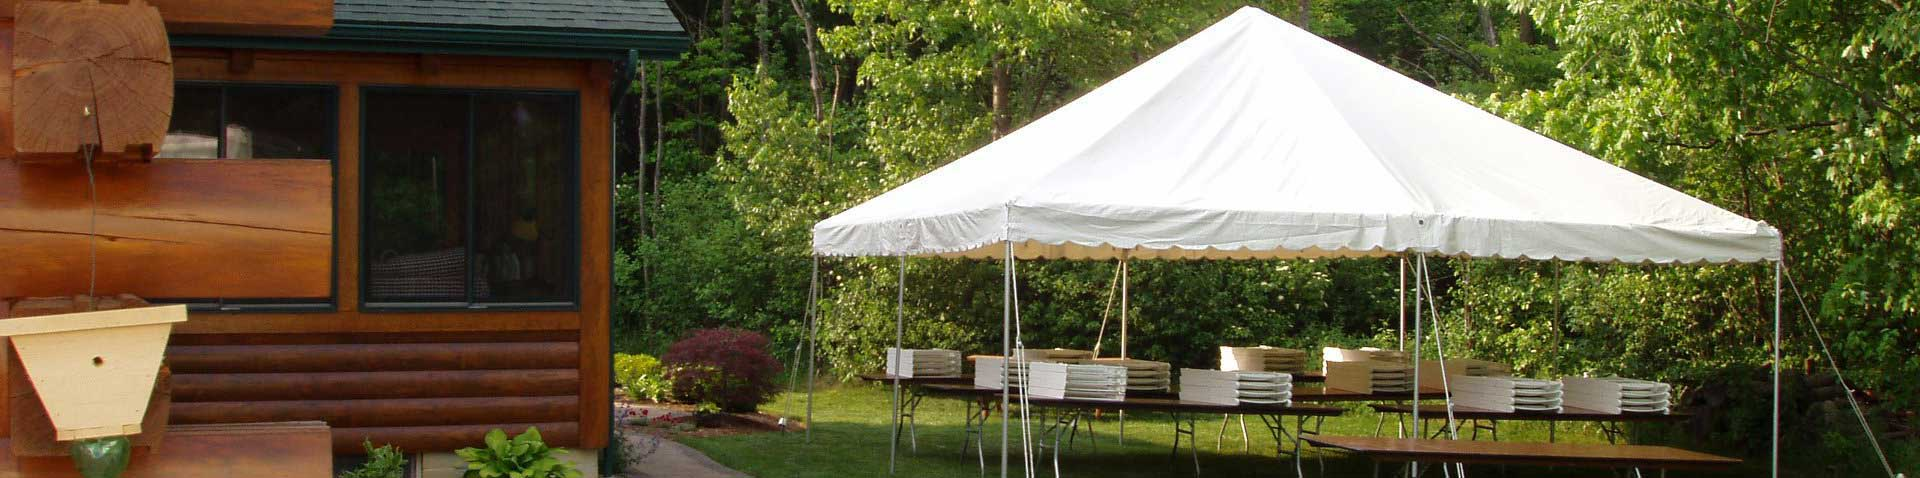 Party Rentals in Northern Minnesota